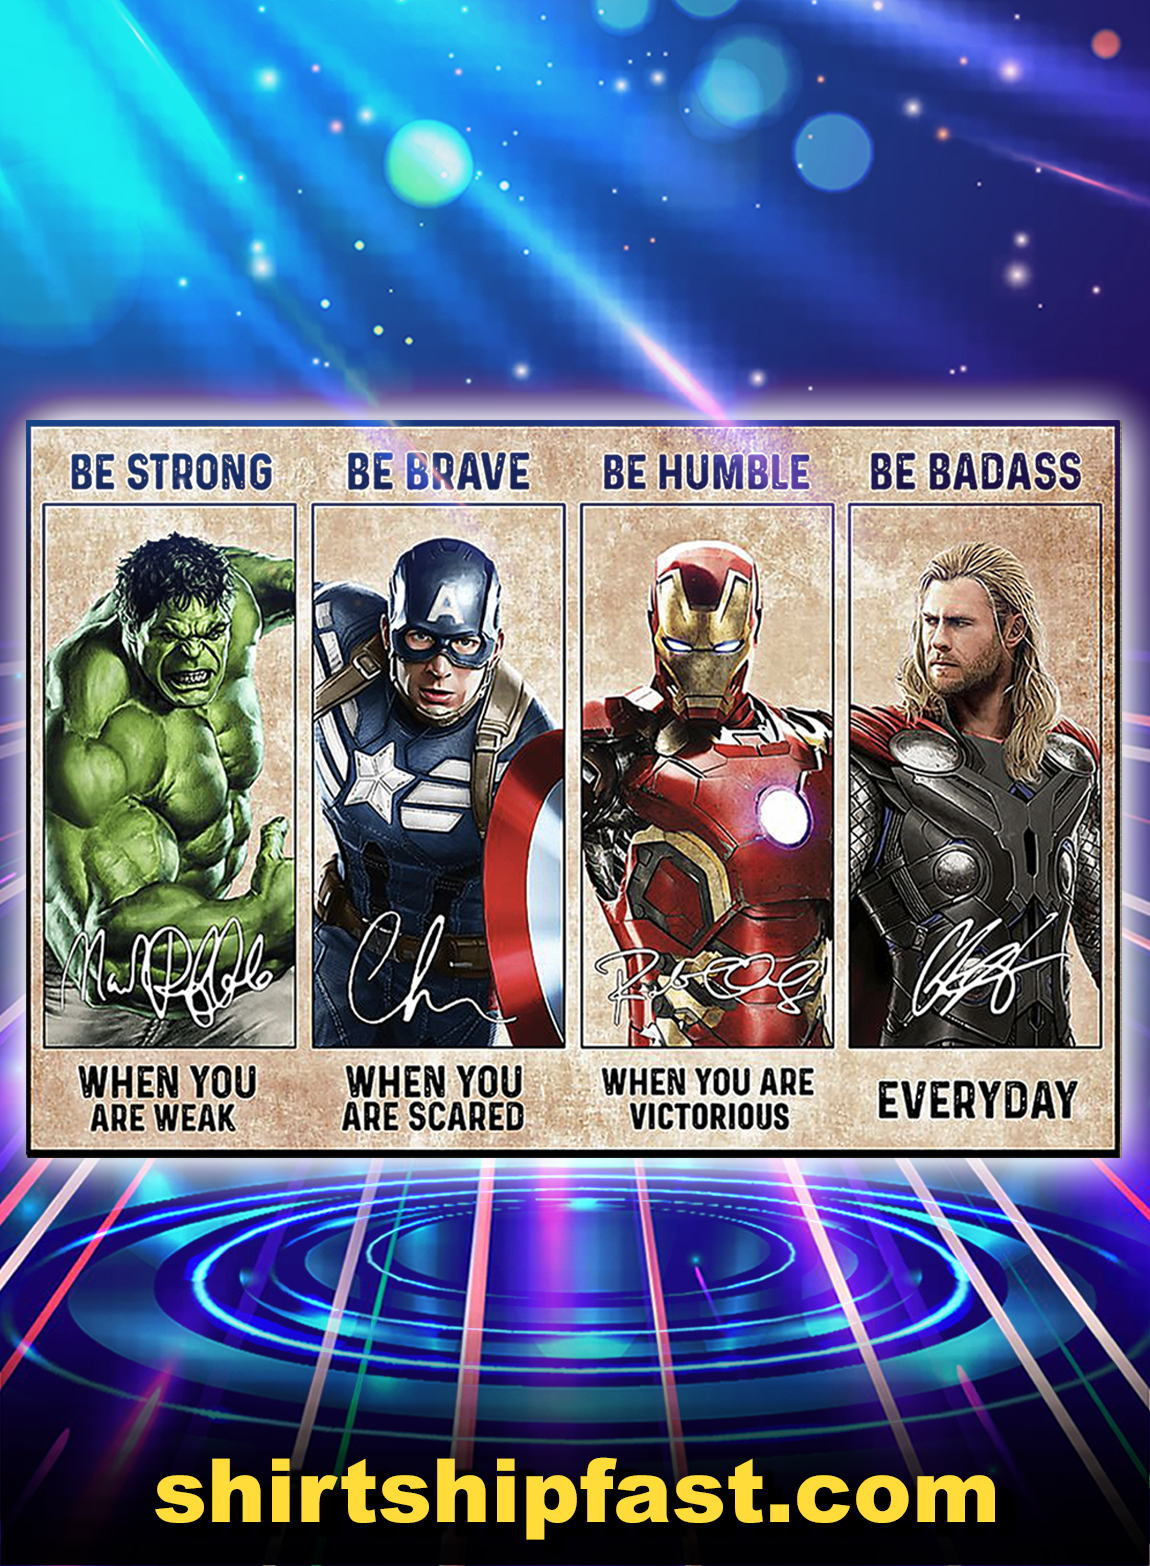 Avengers signature be strong be brave be humble be badass poster - A3